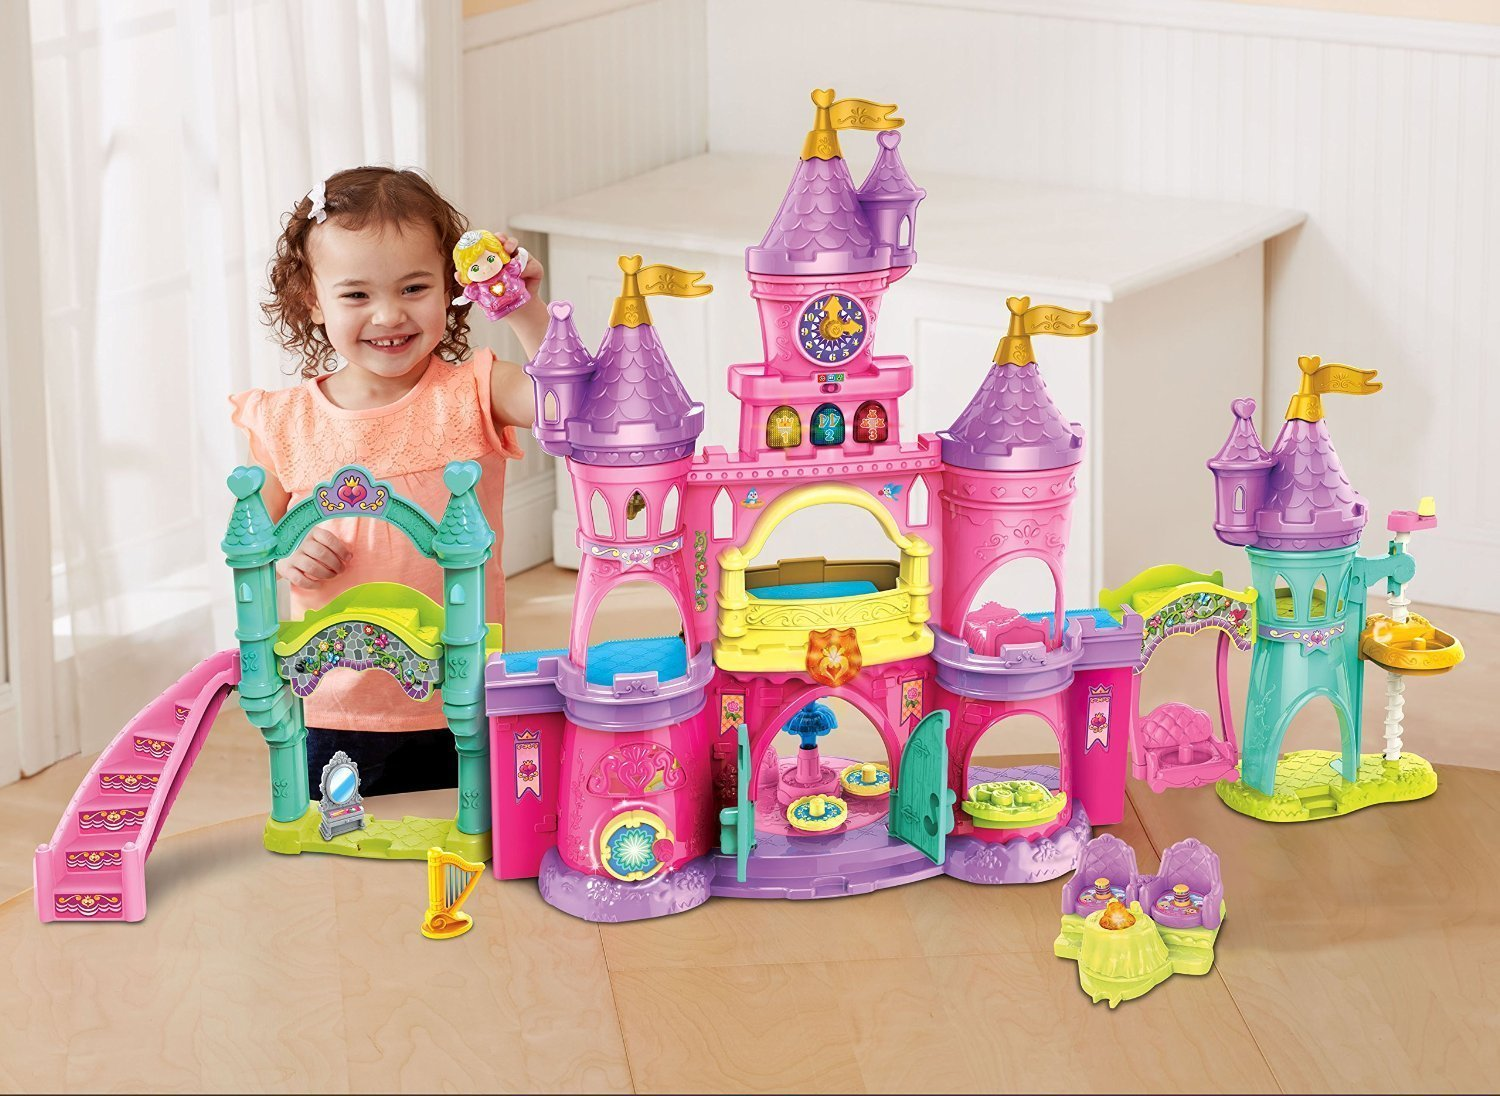 VTech Go Go Enchanted Princess Palace